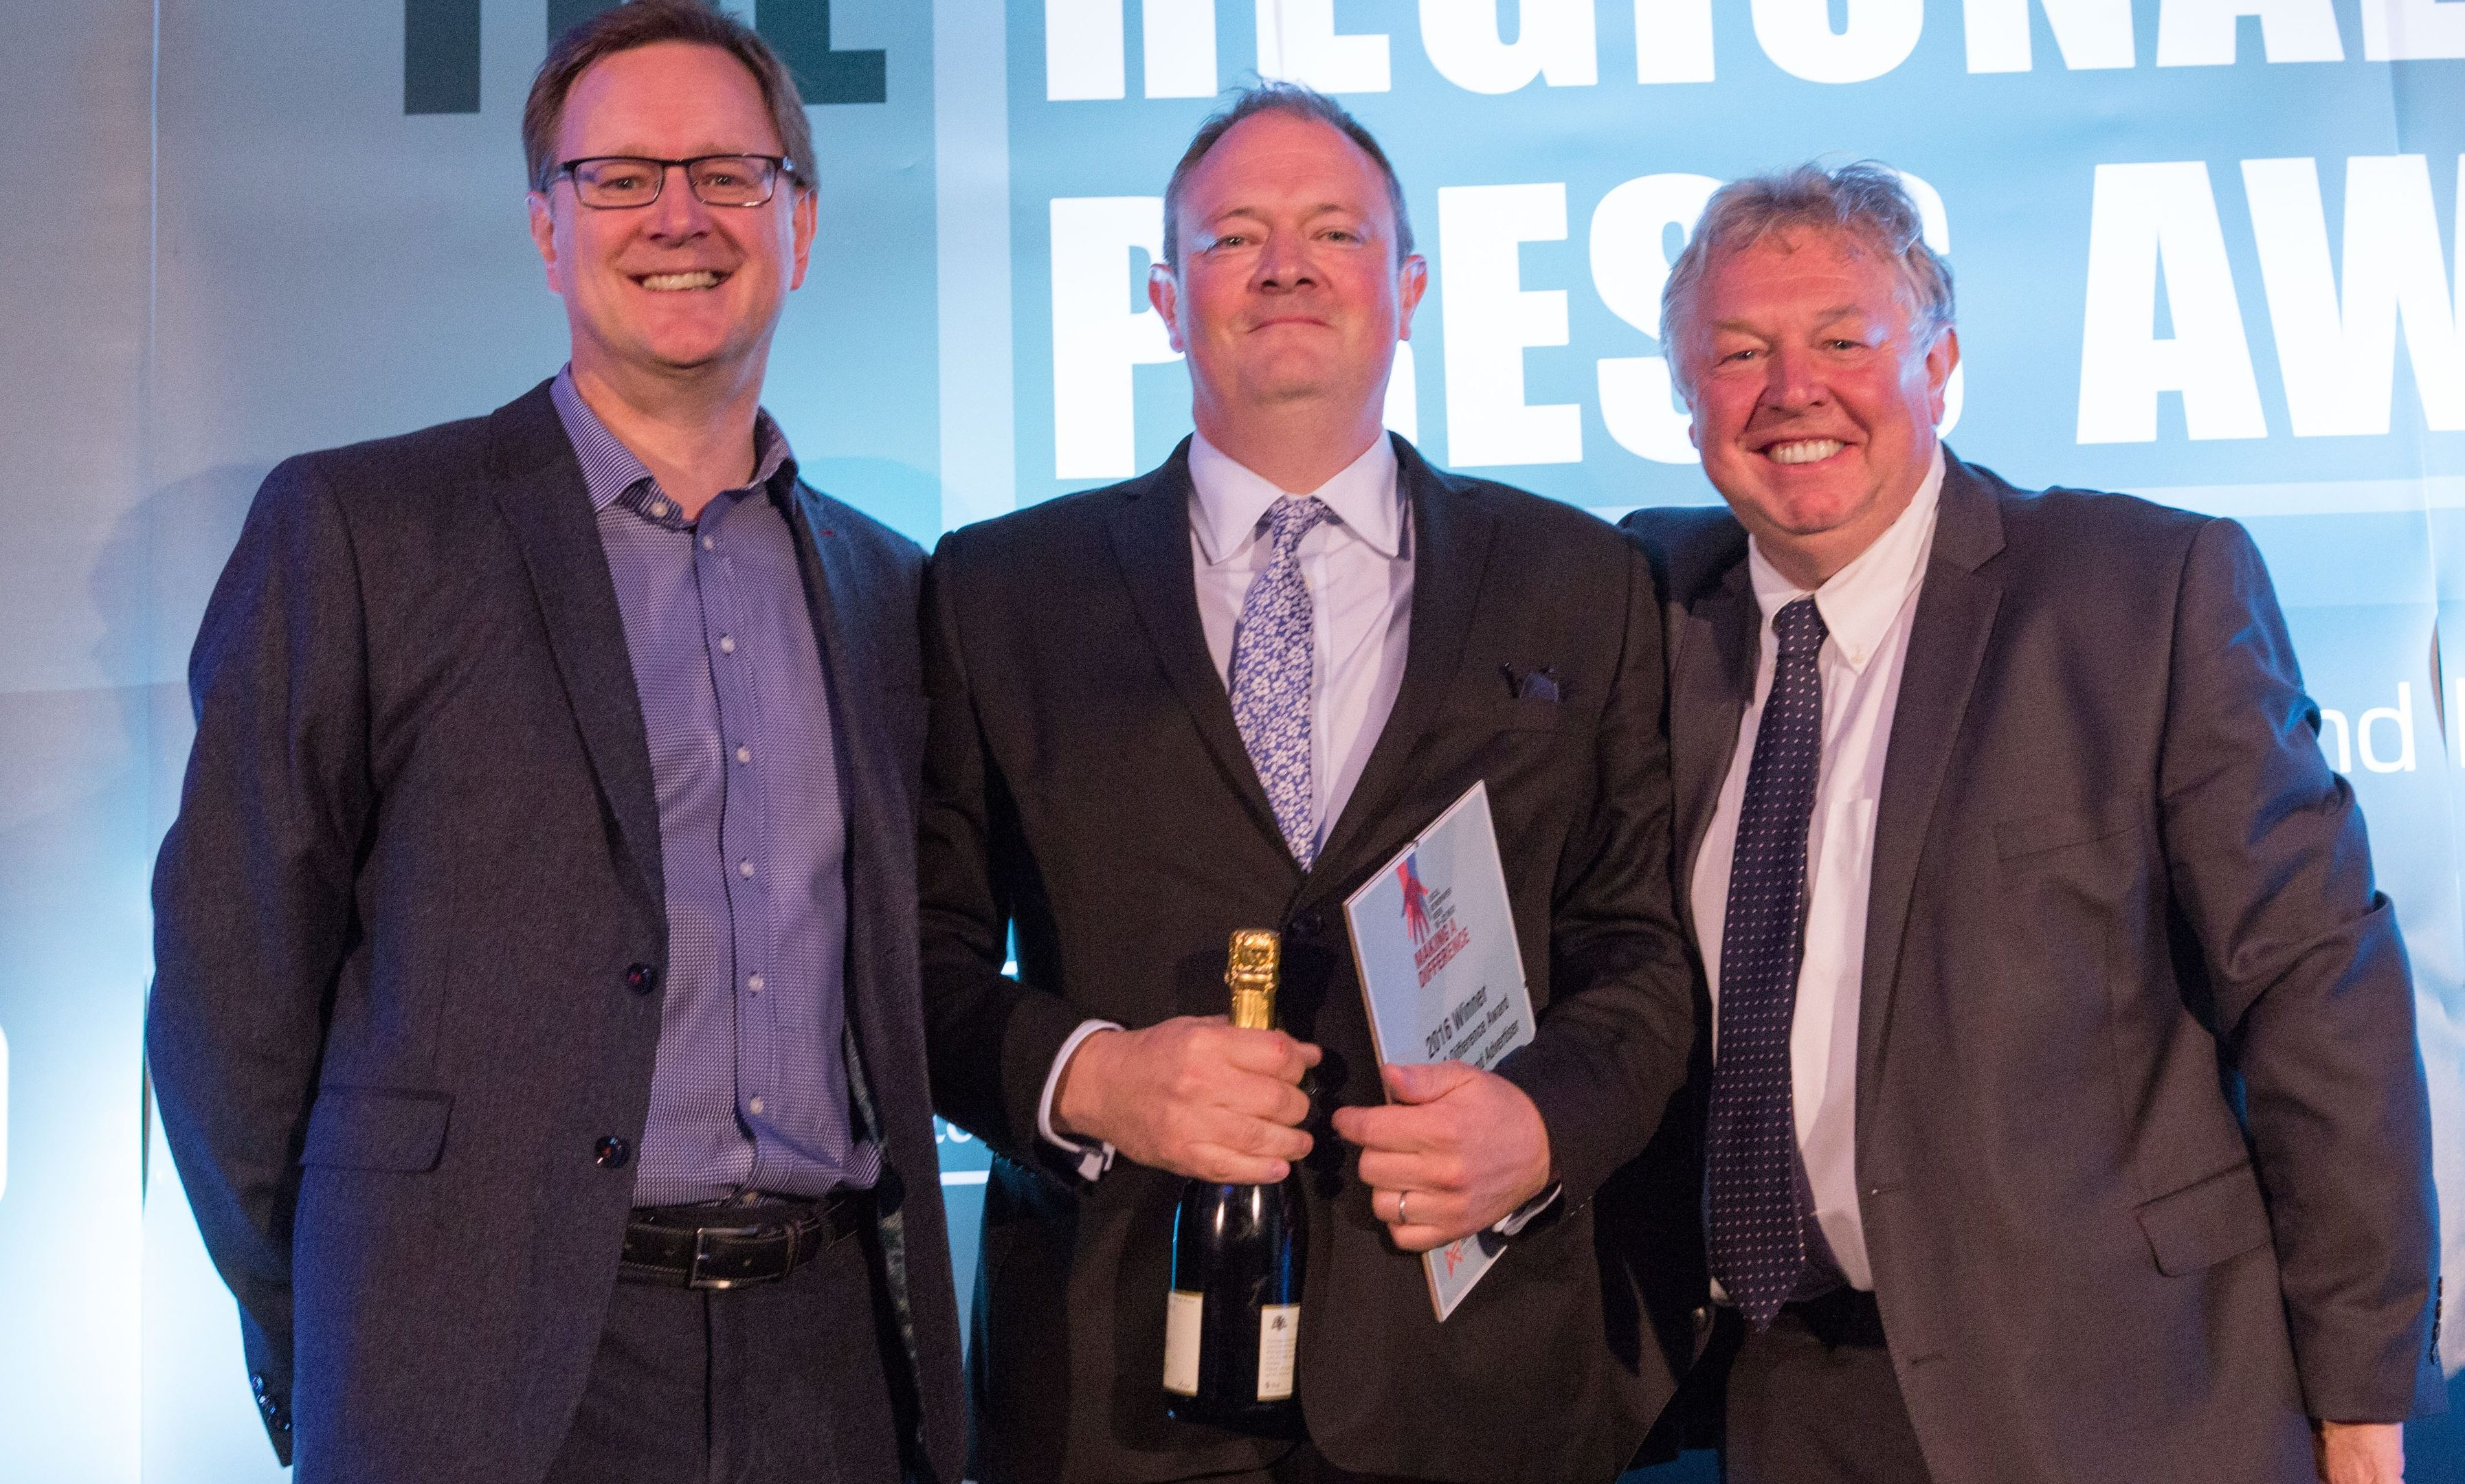 Courier editor Richard Neville accepting the making A Difference Award from Ashley Highfield, left, and host Nick Ferrari, right.